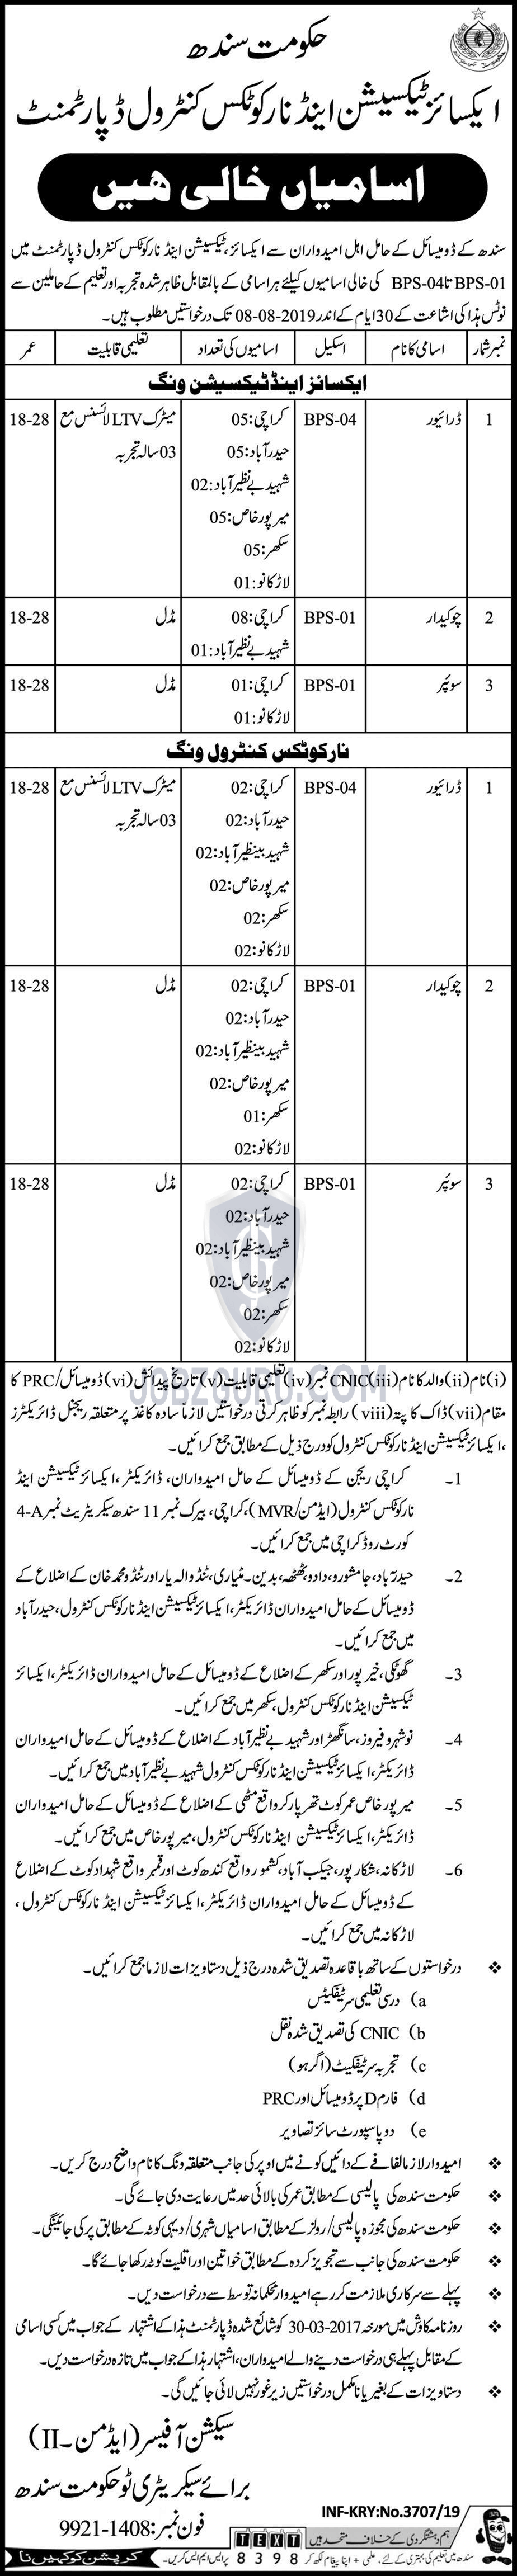 Excise Taxation and Narcotics Control Department Latest Jobs 2019